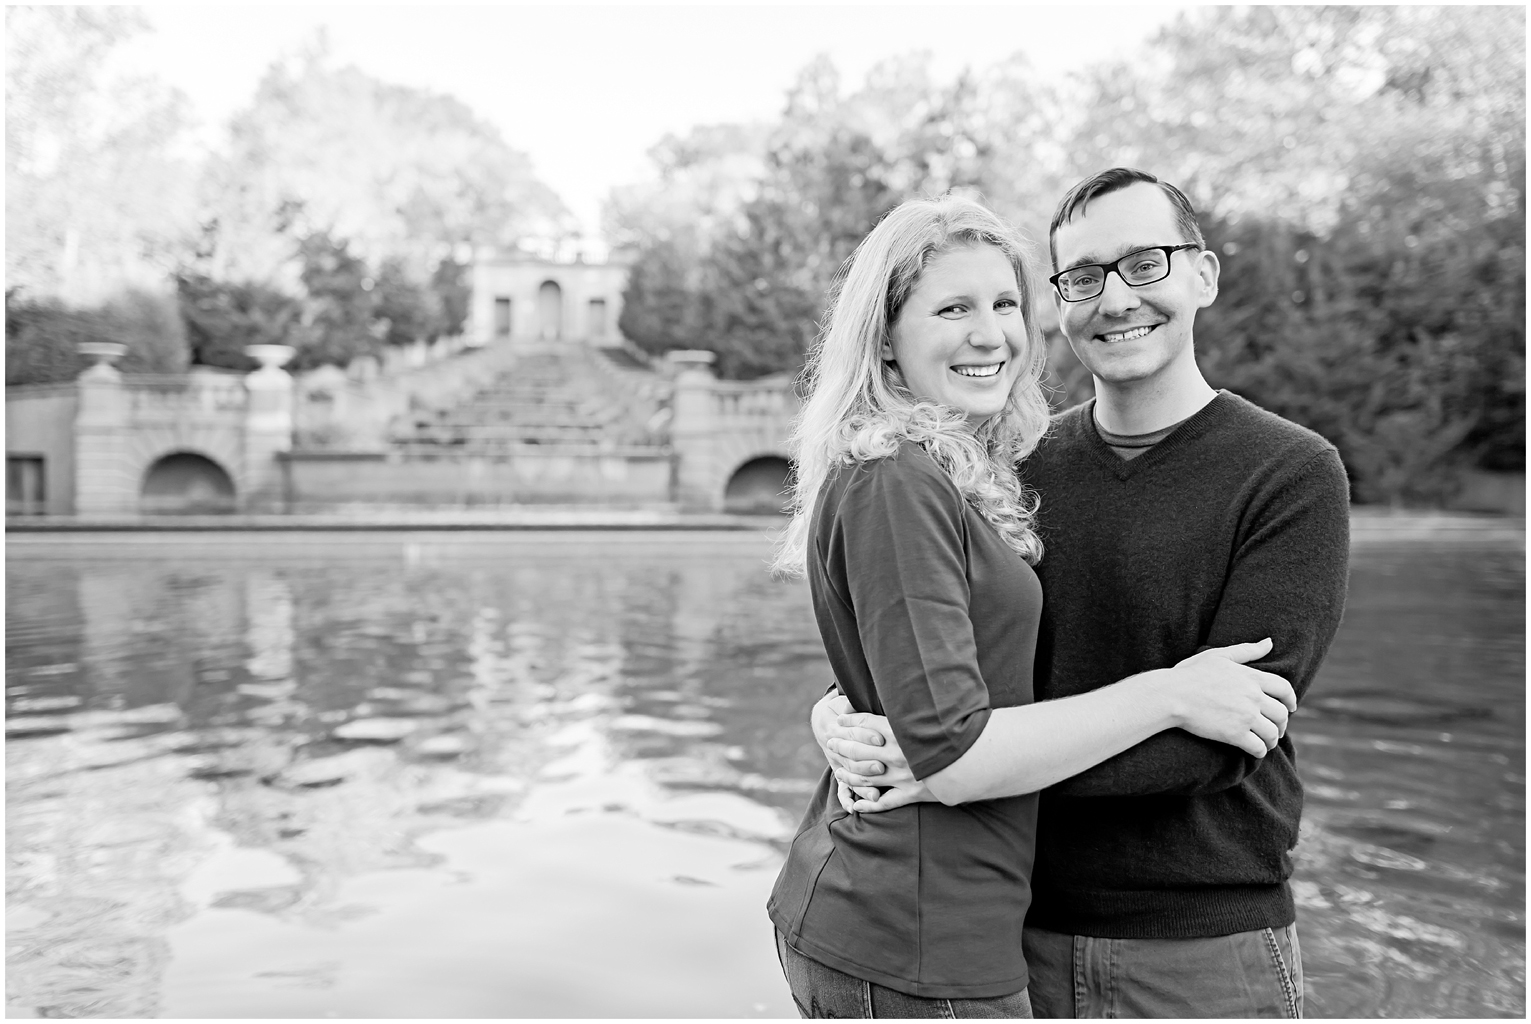 h-street-meridian-hill-washington-dc-engagement-photography-liz-stewart-photo-00004